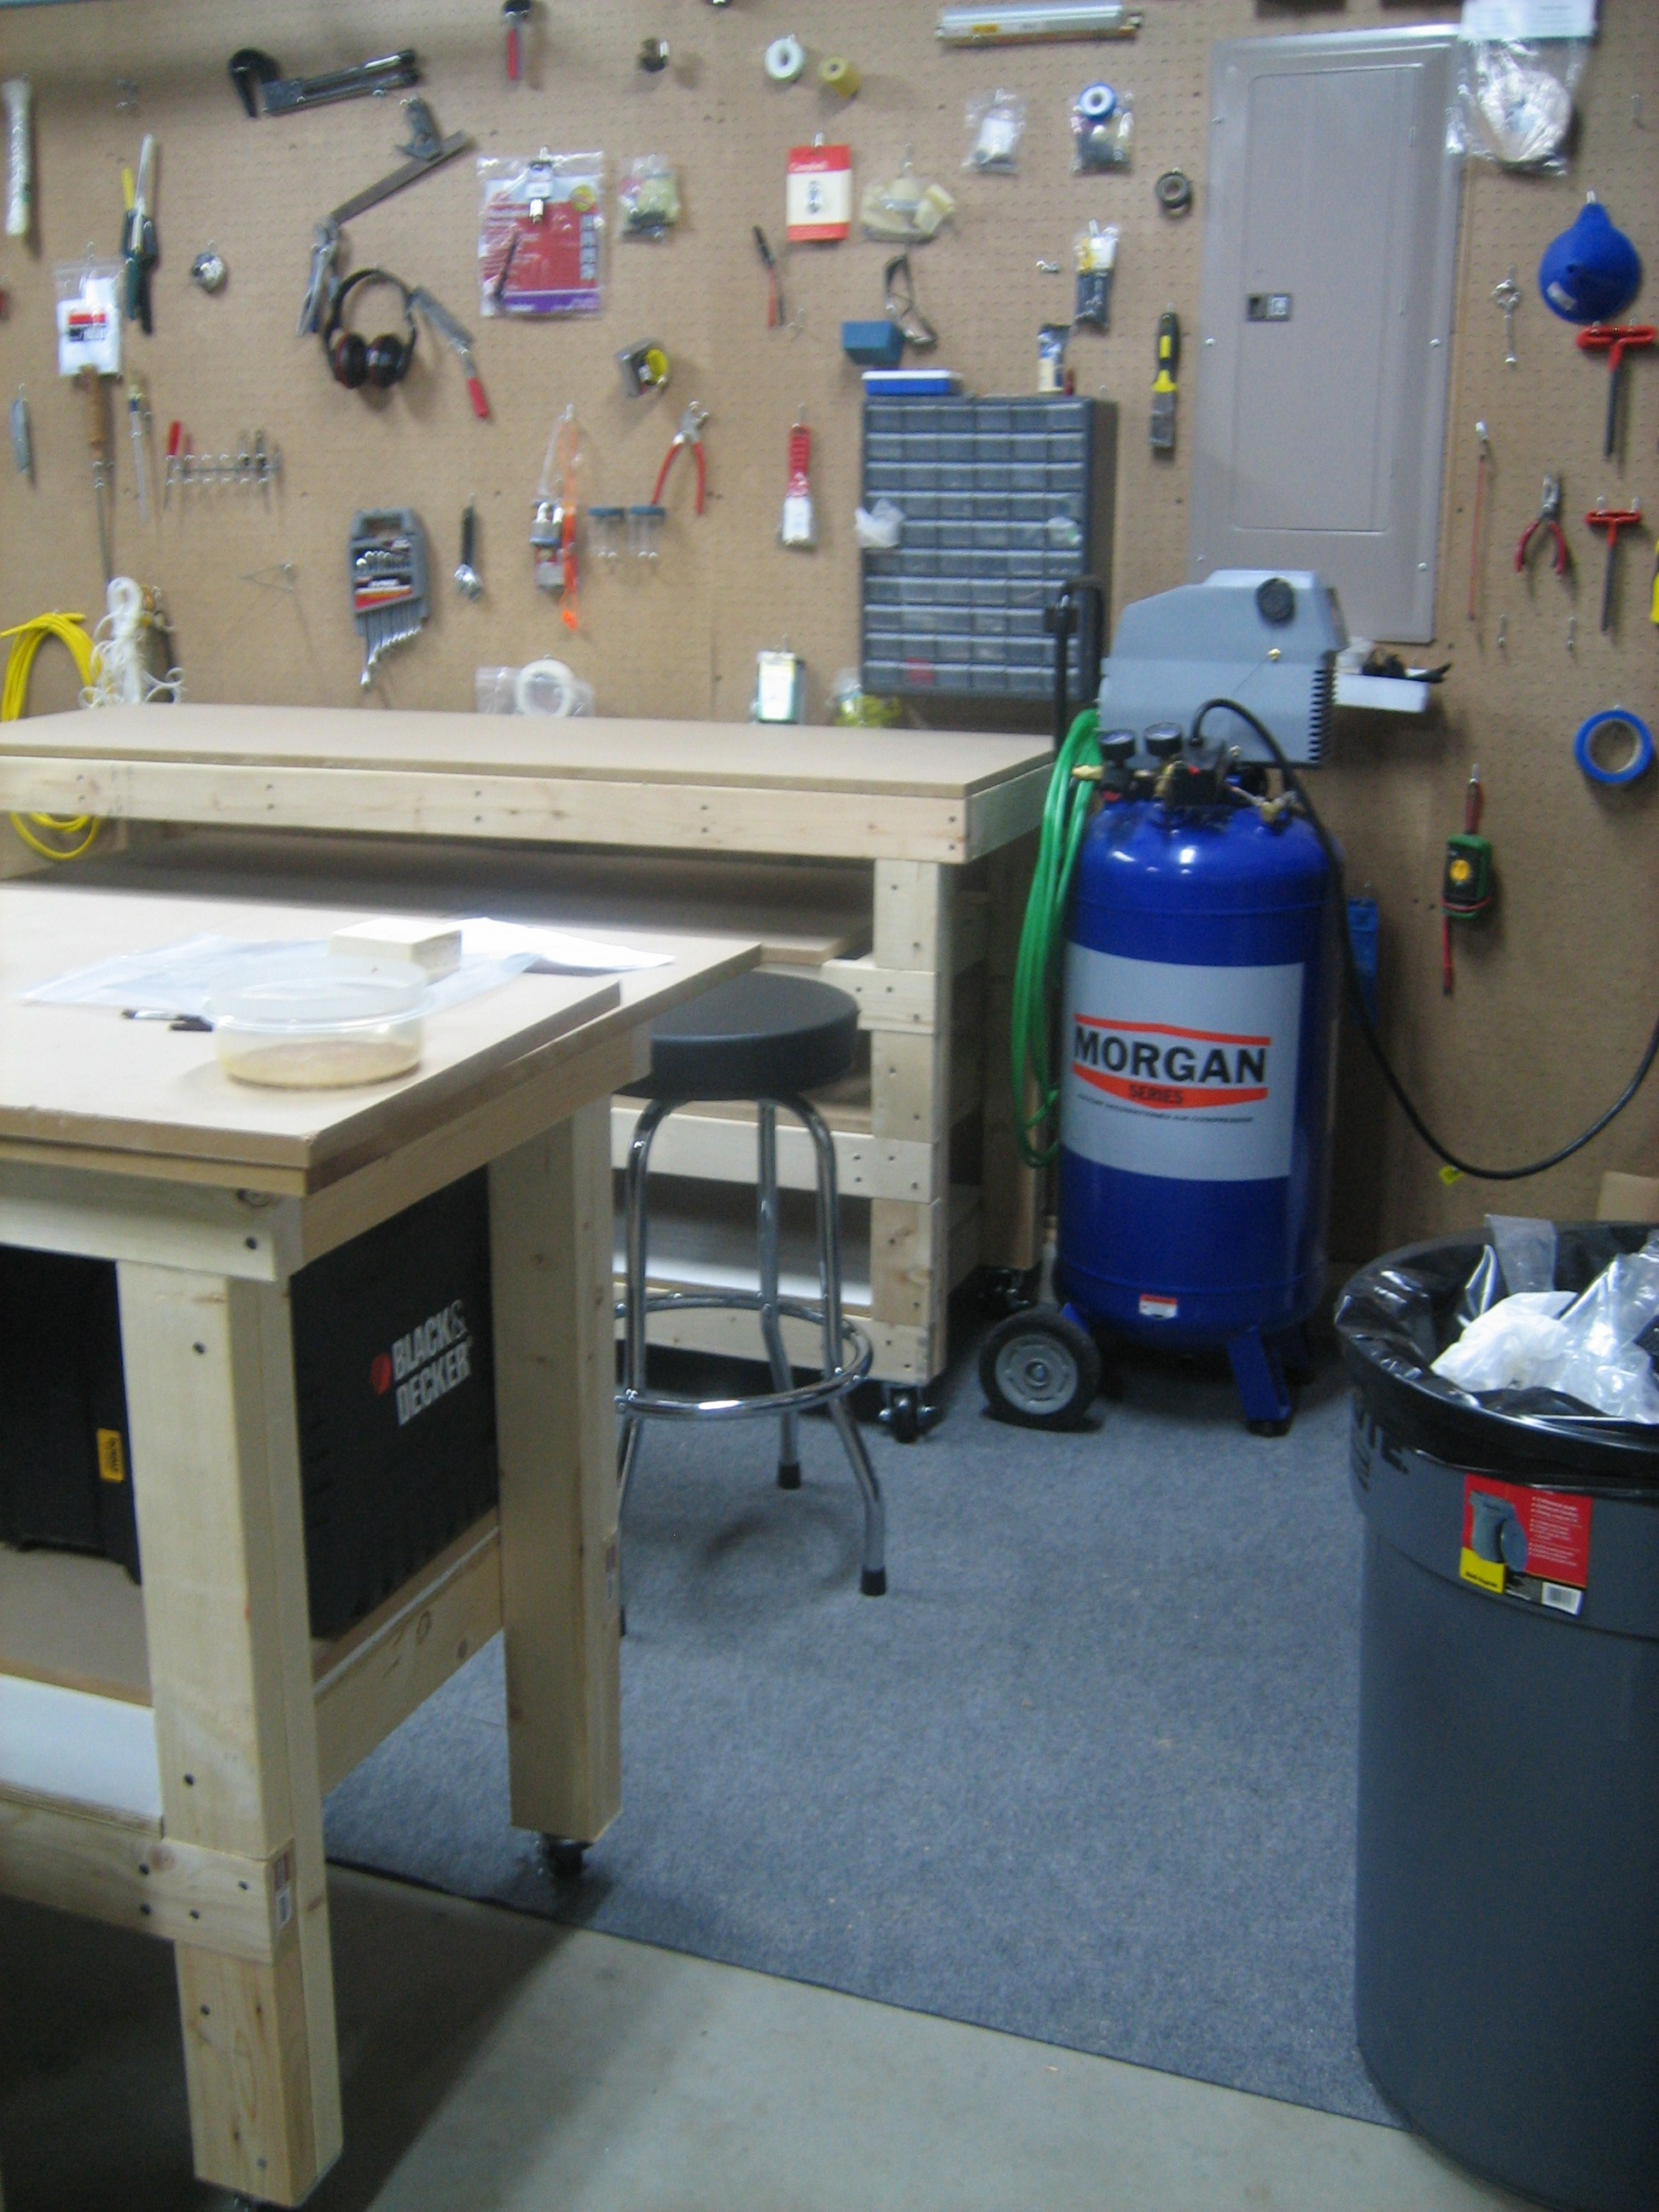 See the nice workbench in the background? That's the new one.